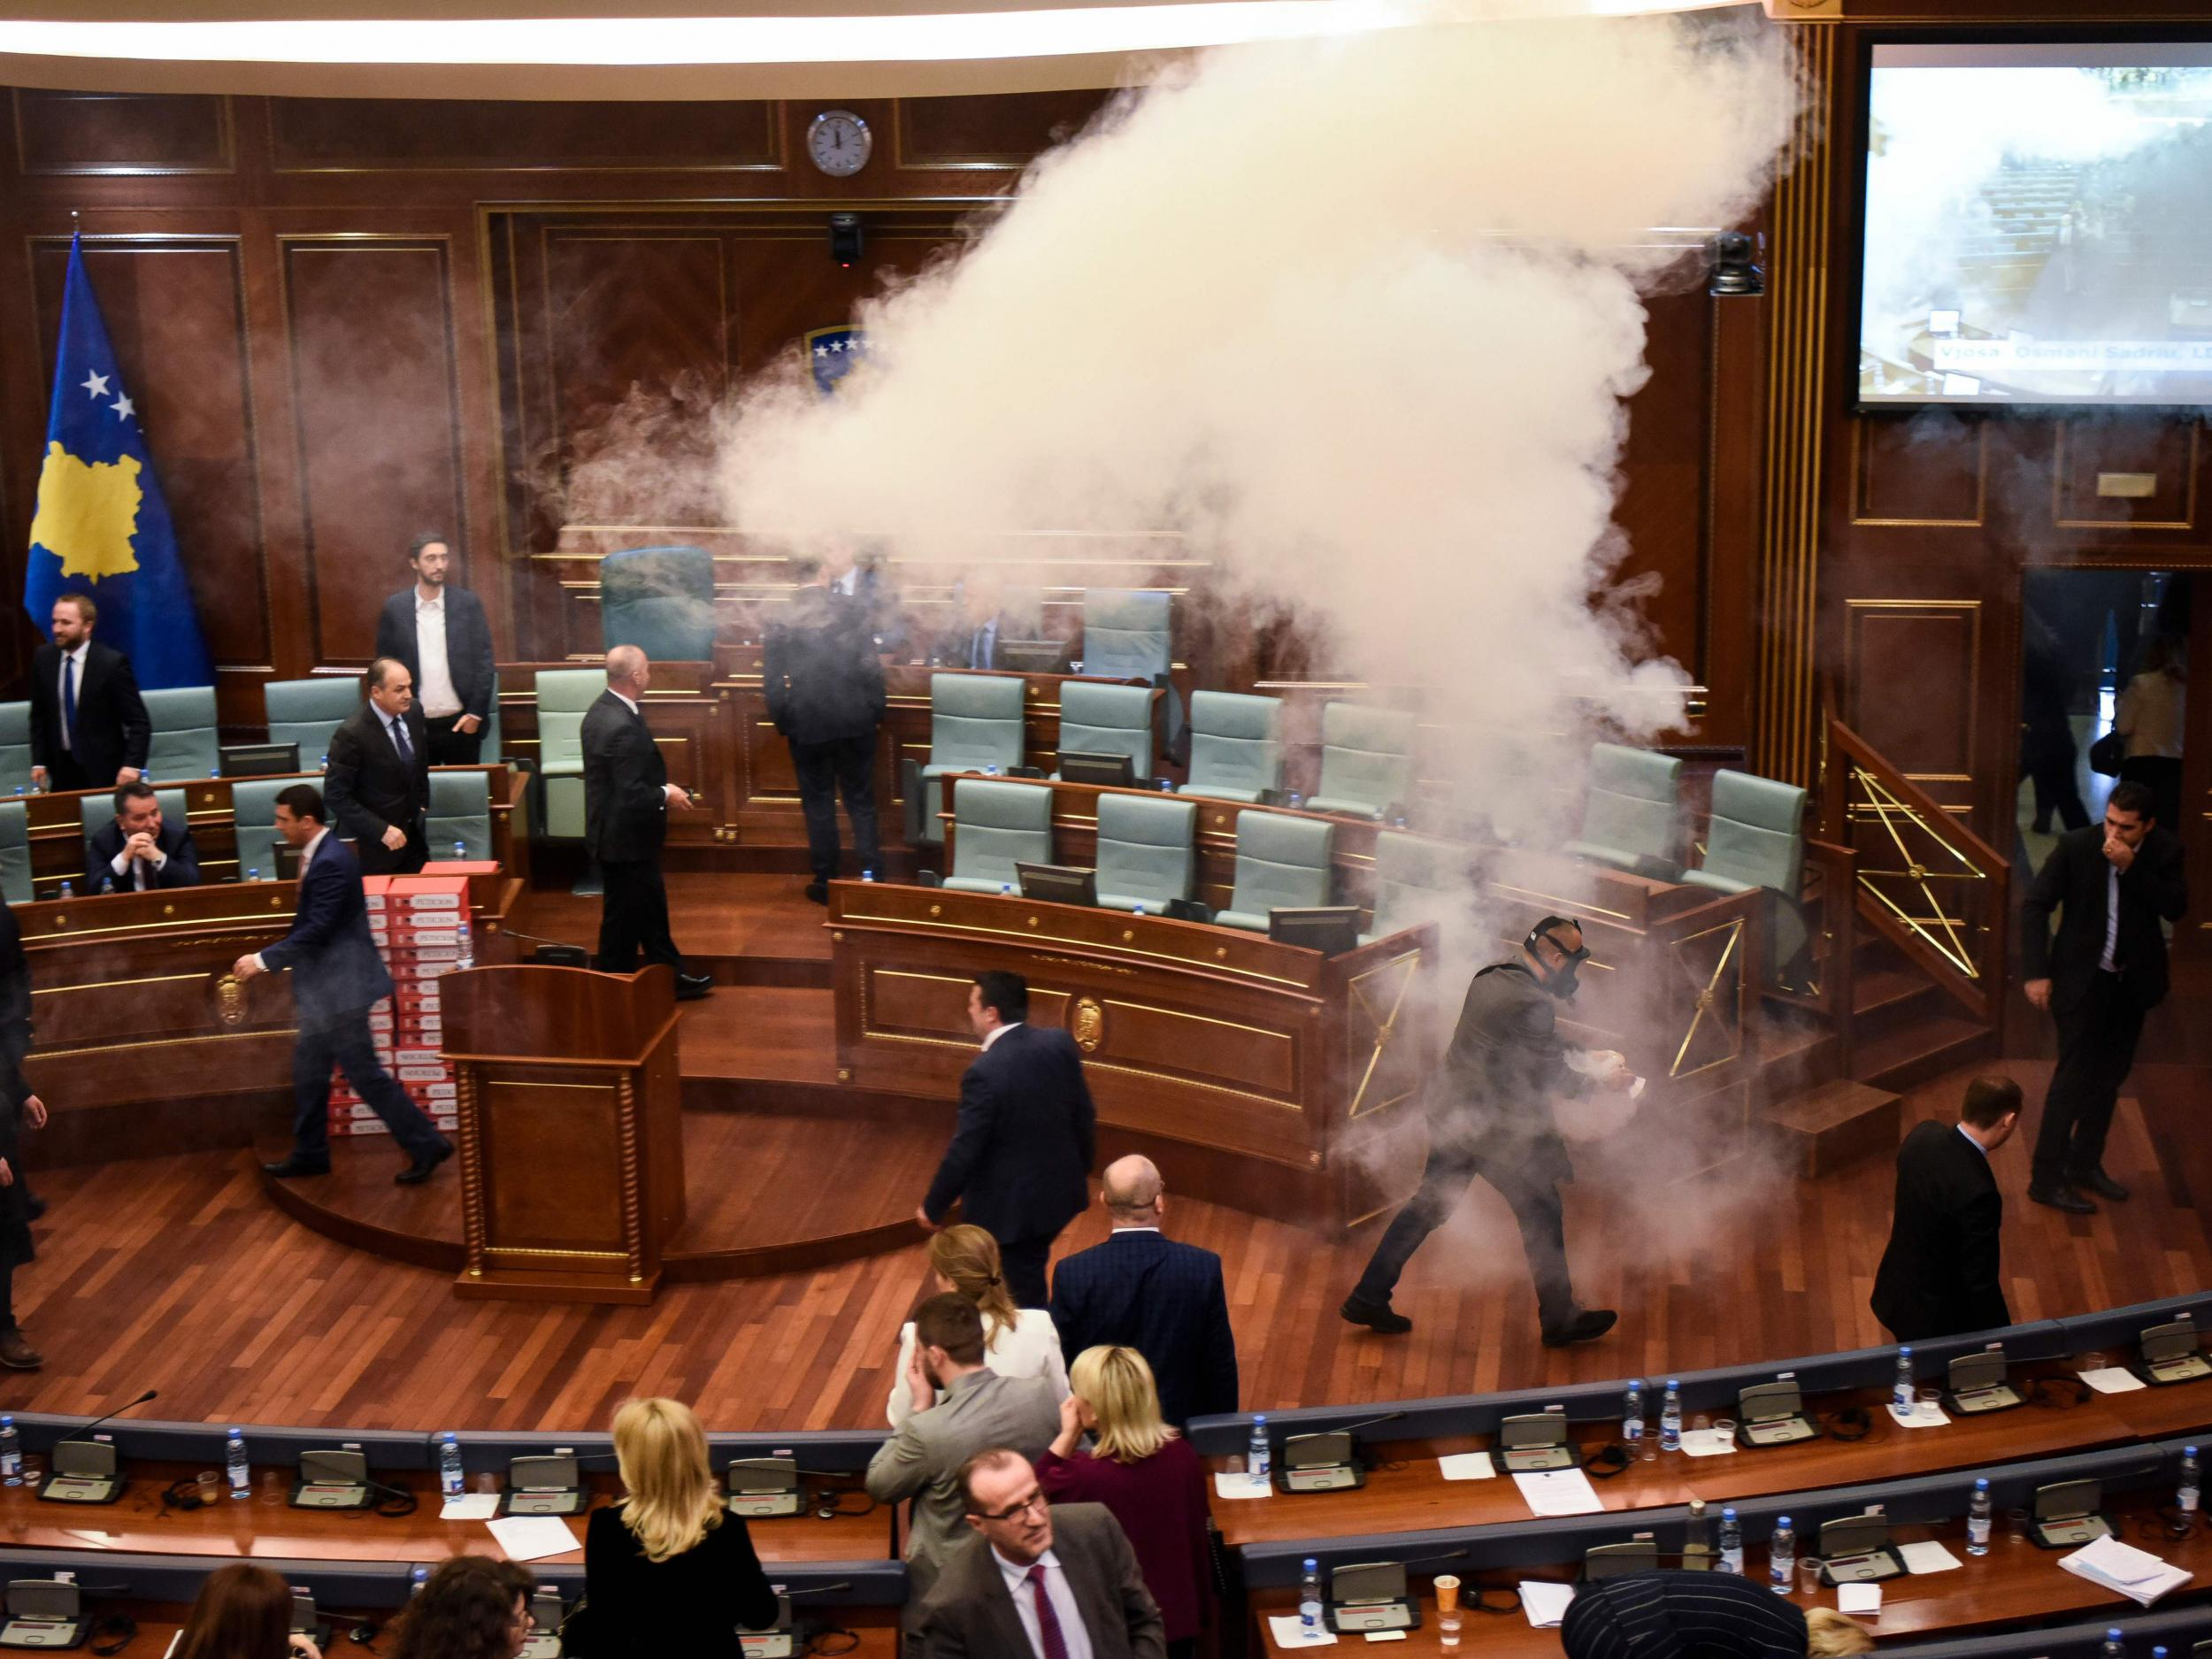 Tear gas released in Kosovo parliament by opposition party in bid to stop vote